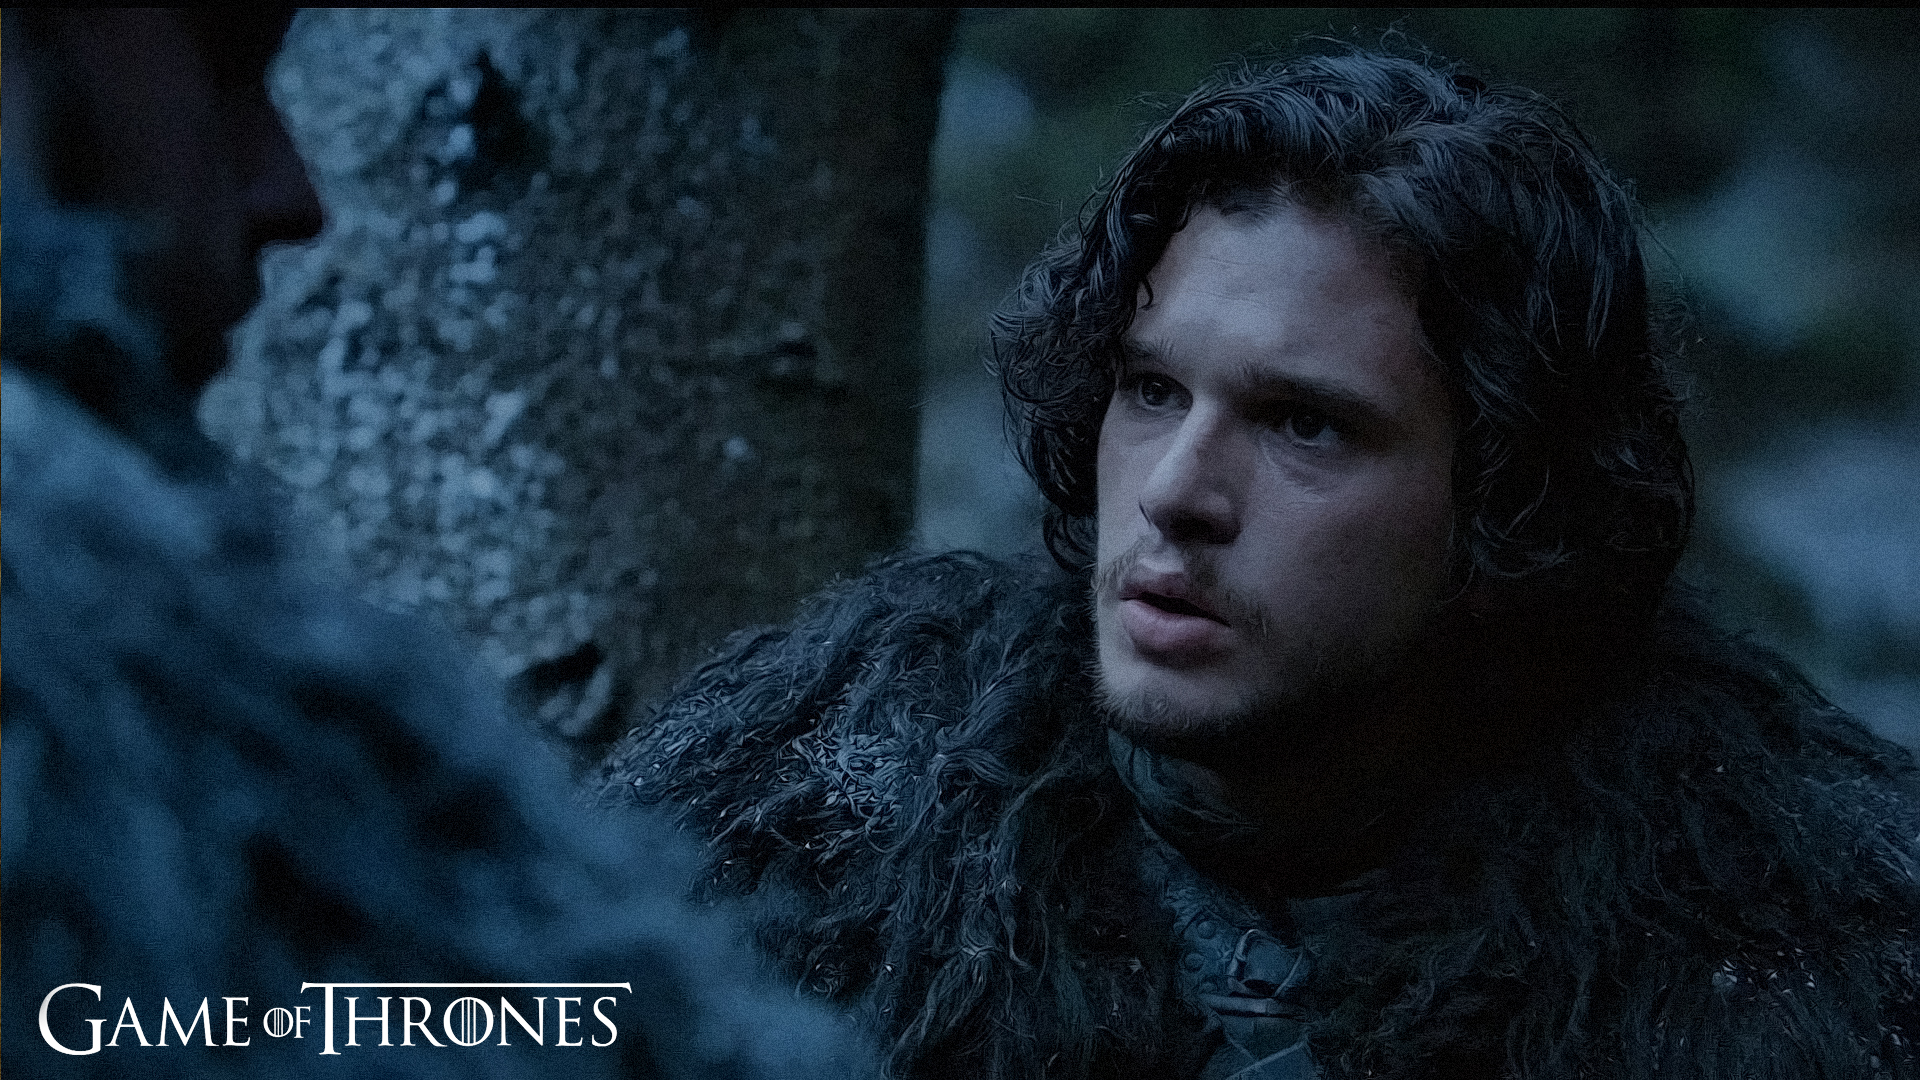 netjon snow game of thrones wallpapers 33138 1920x1080jpg 1920x1080